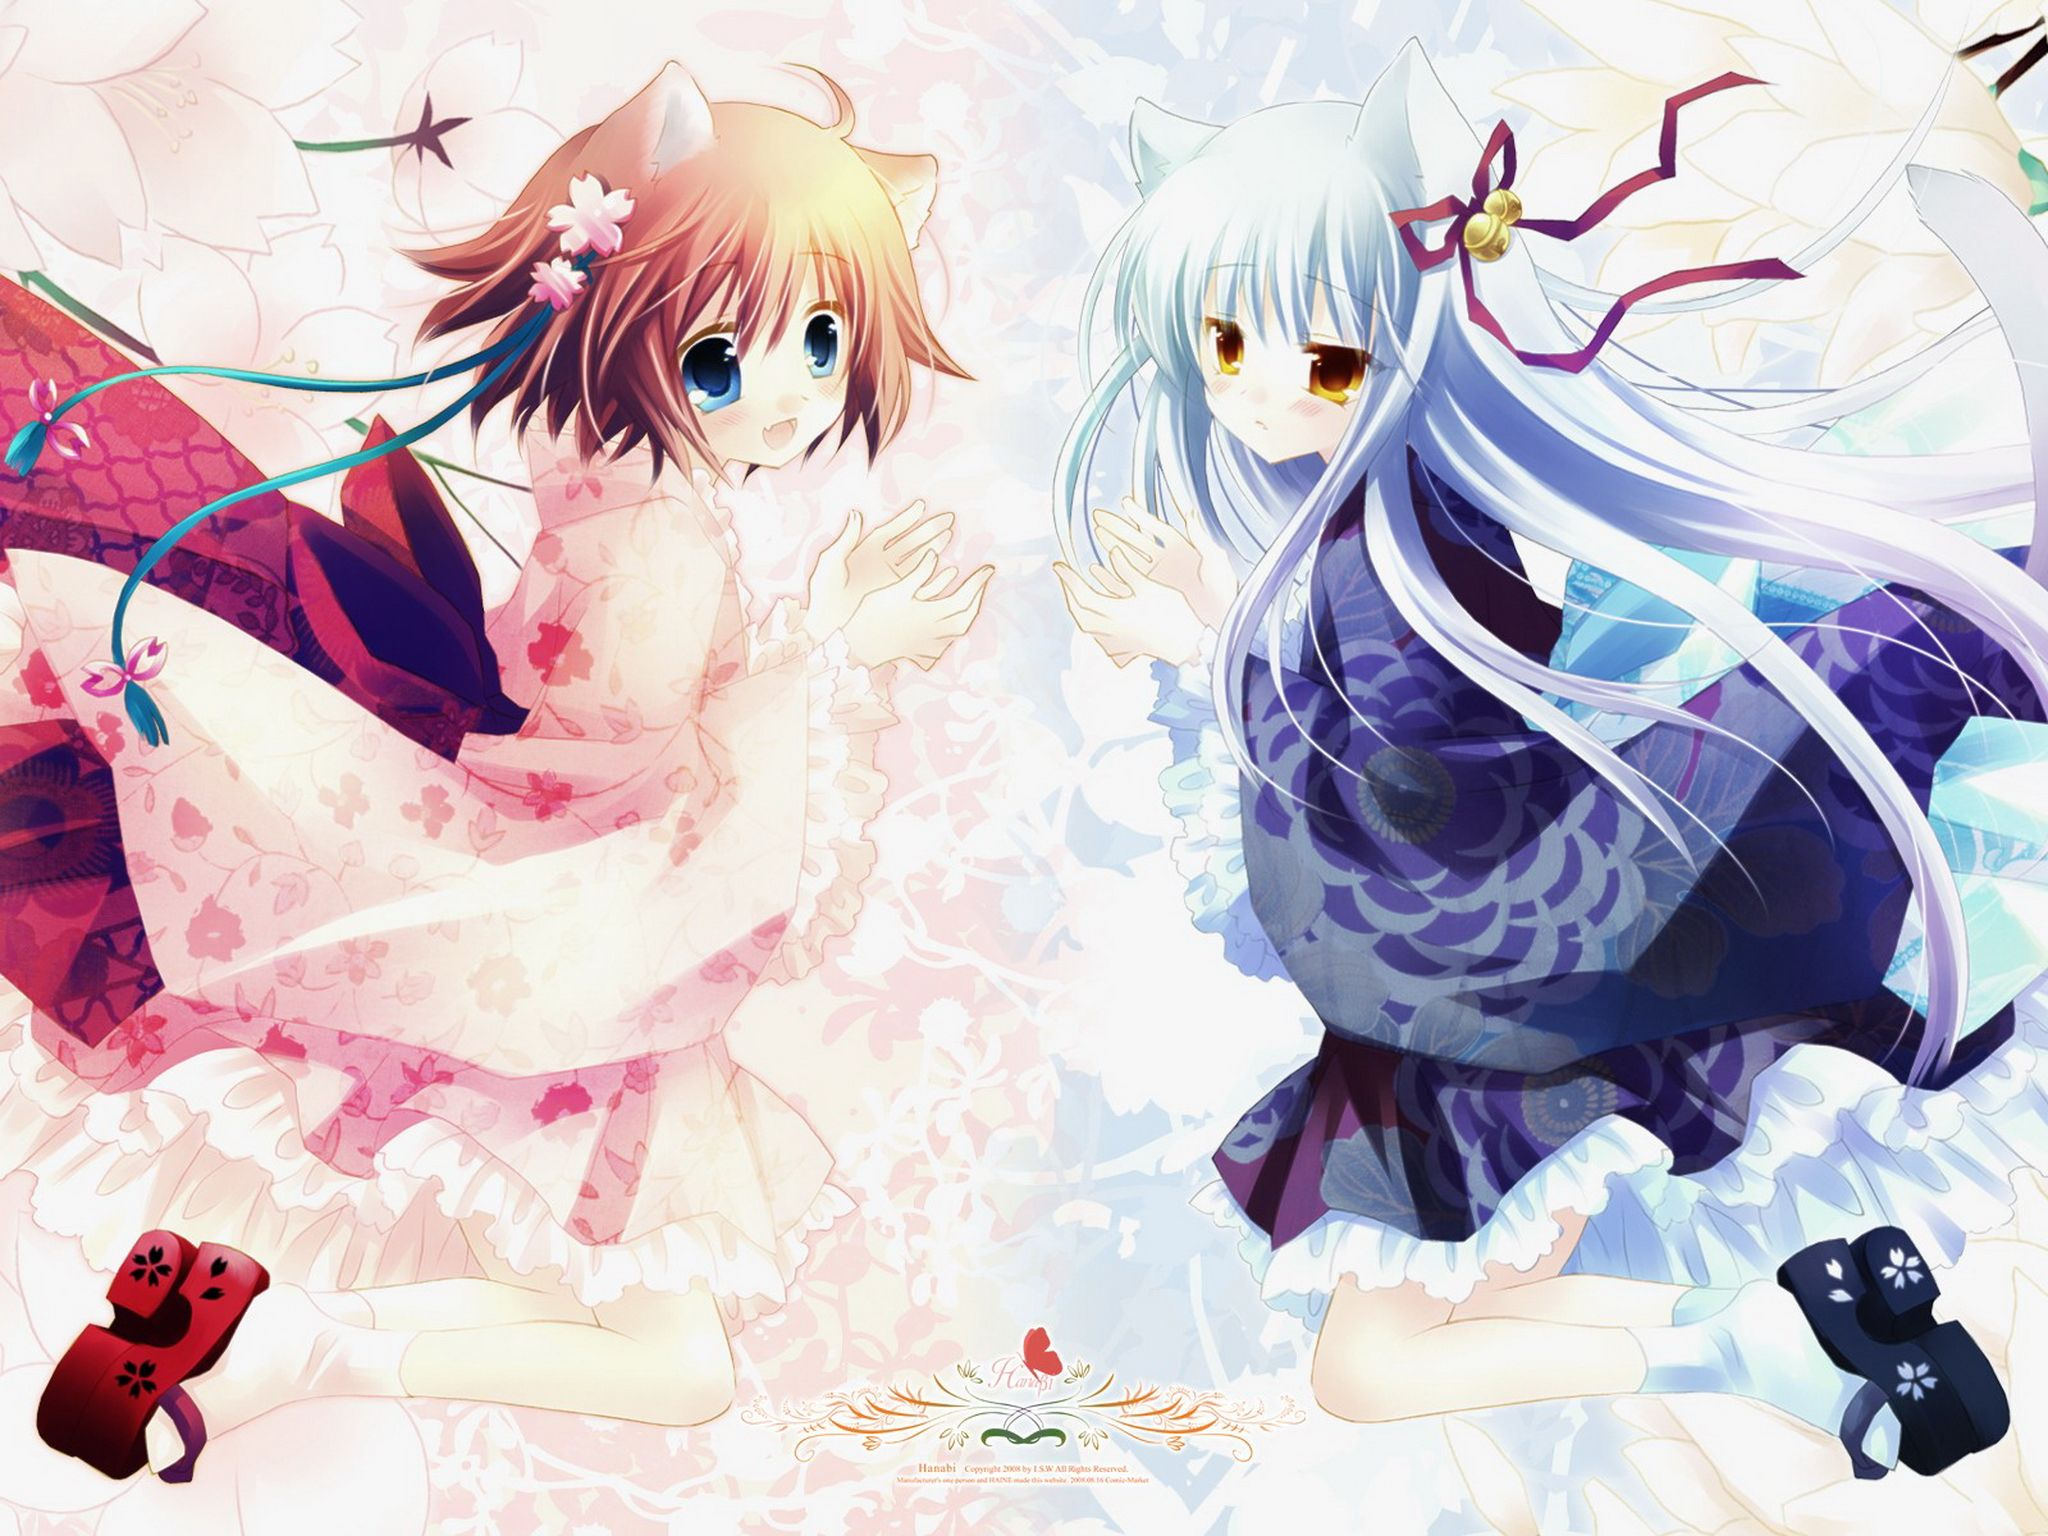 manga art | japanese anime art wallpaper, ipad | cutenesssss